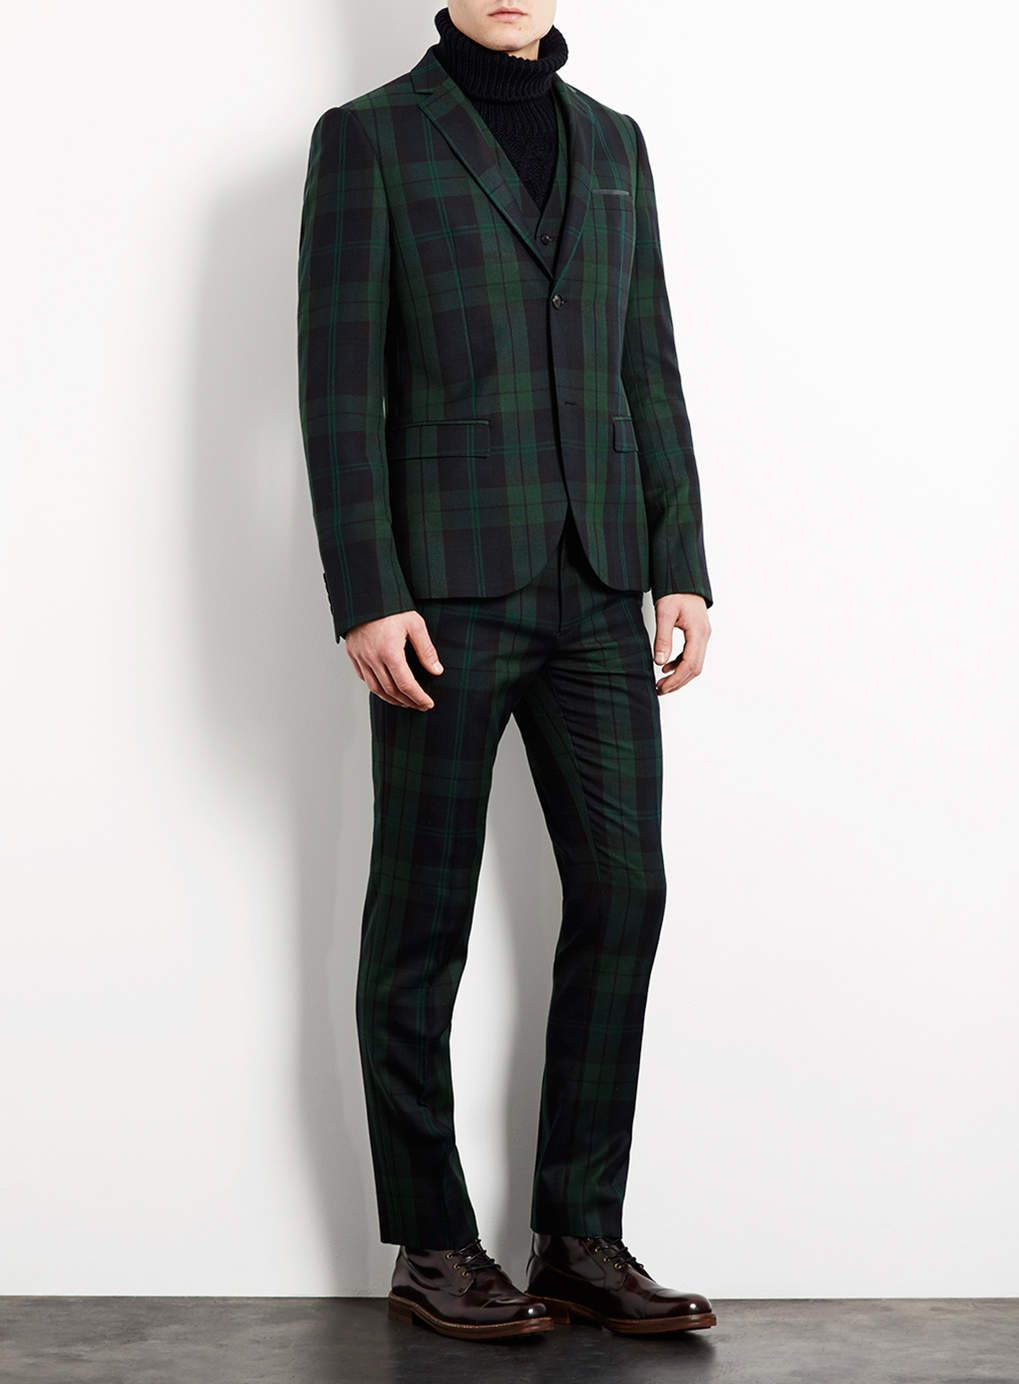 Green navy checkered suit by TOPMAN | Your Pinterest Likes ...